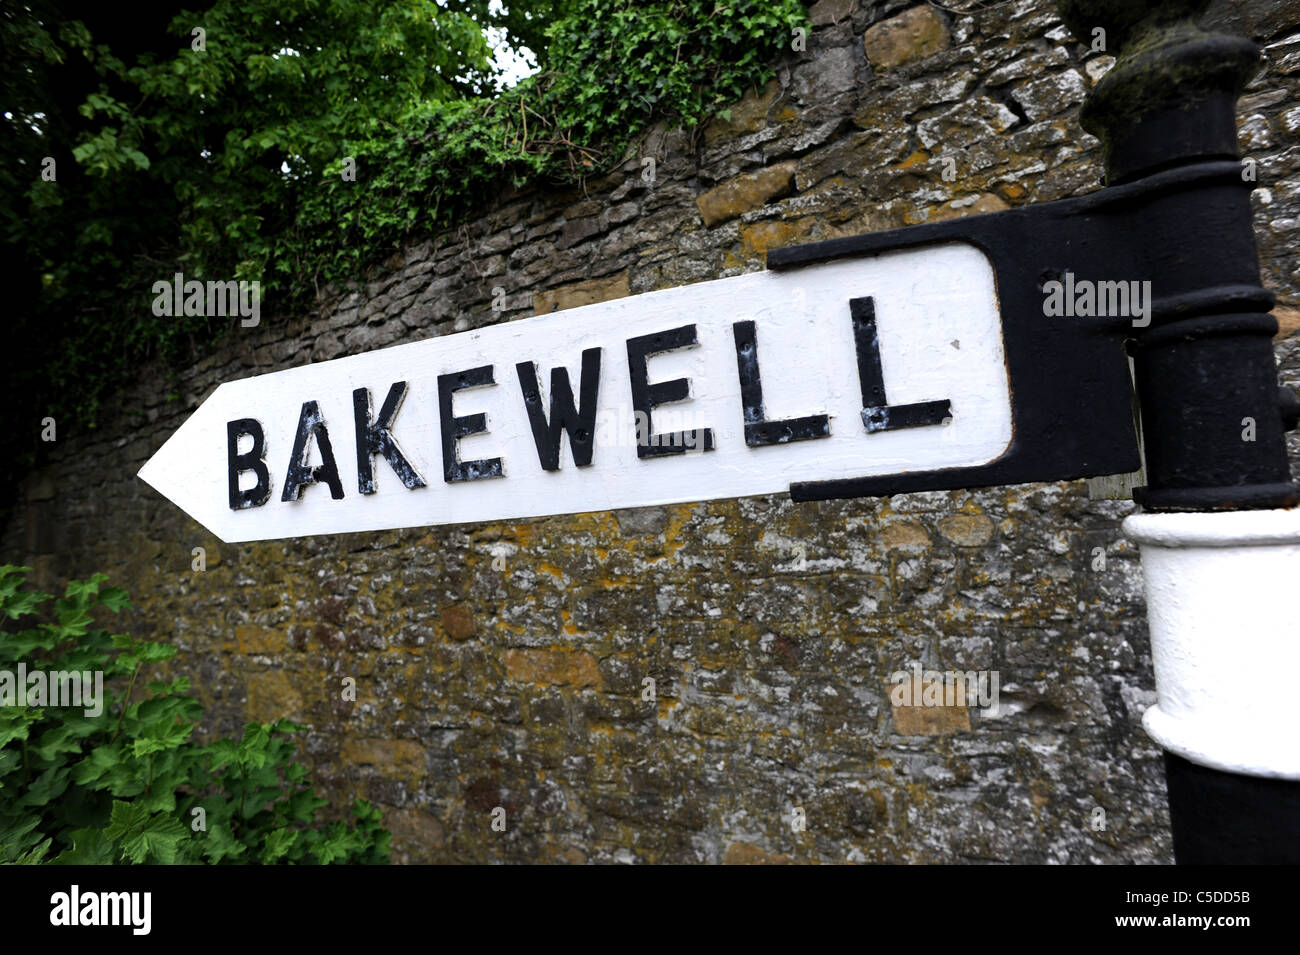 Sign for the ancient village of Bakewell - Stock Image